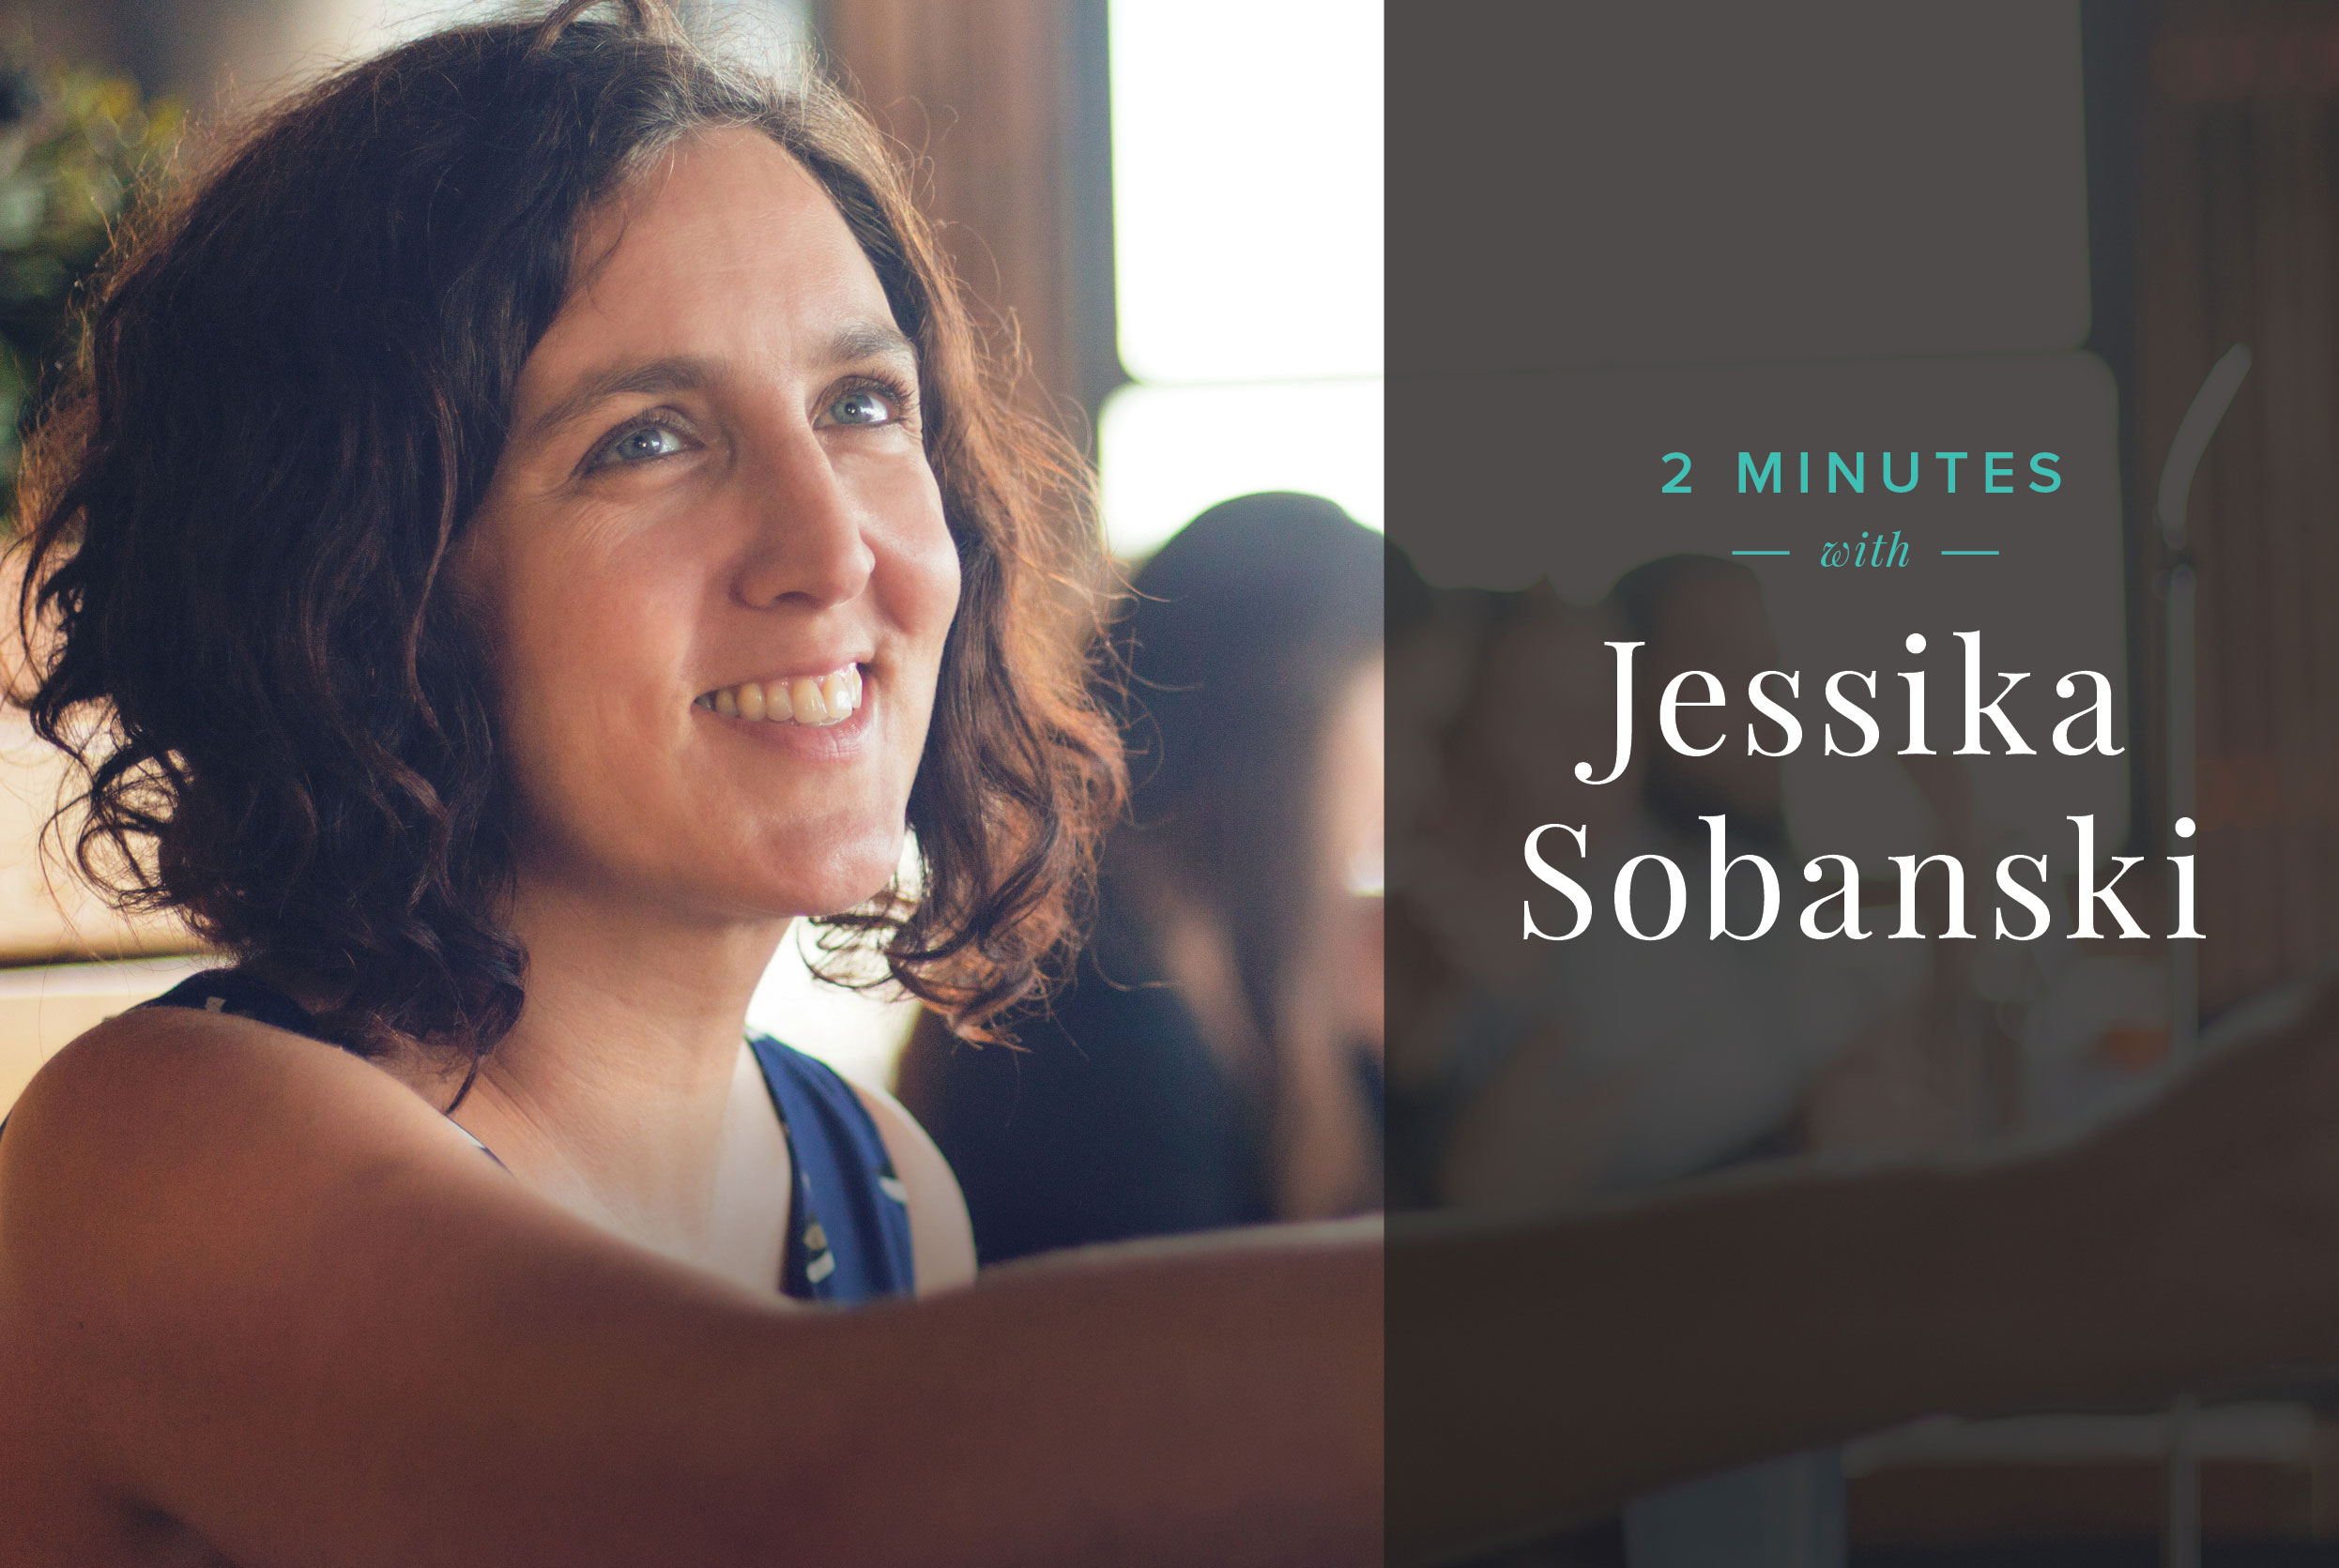 2 minutes with Jessika